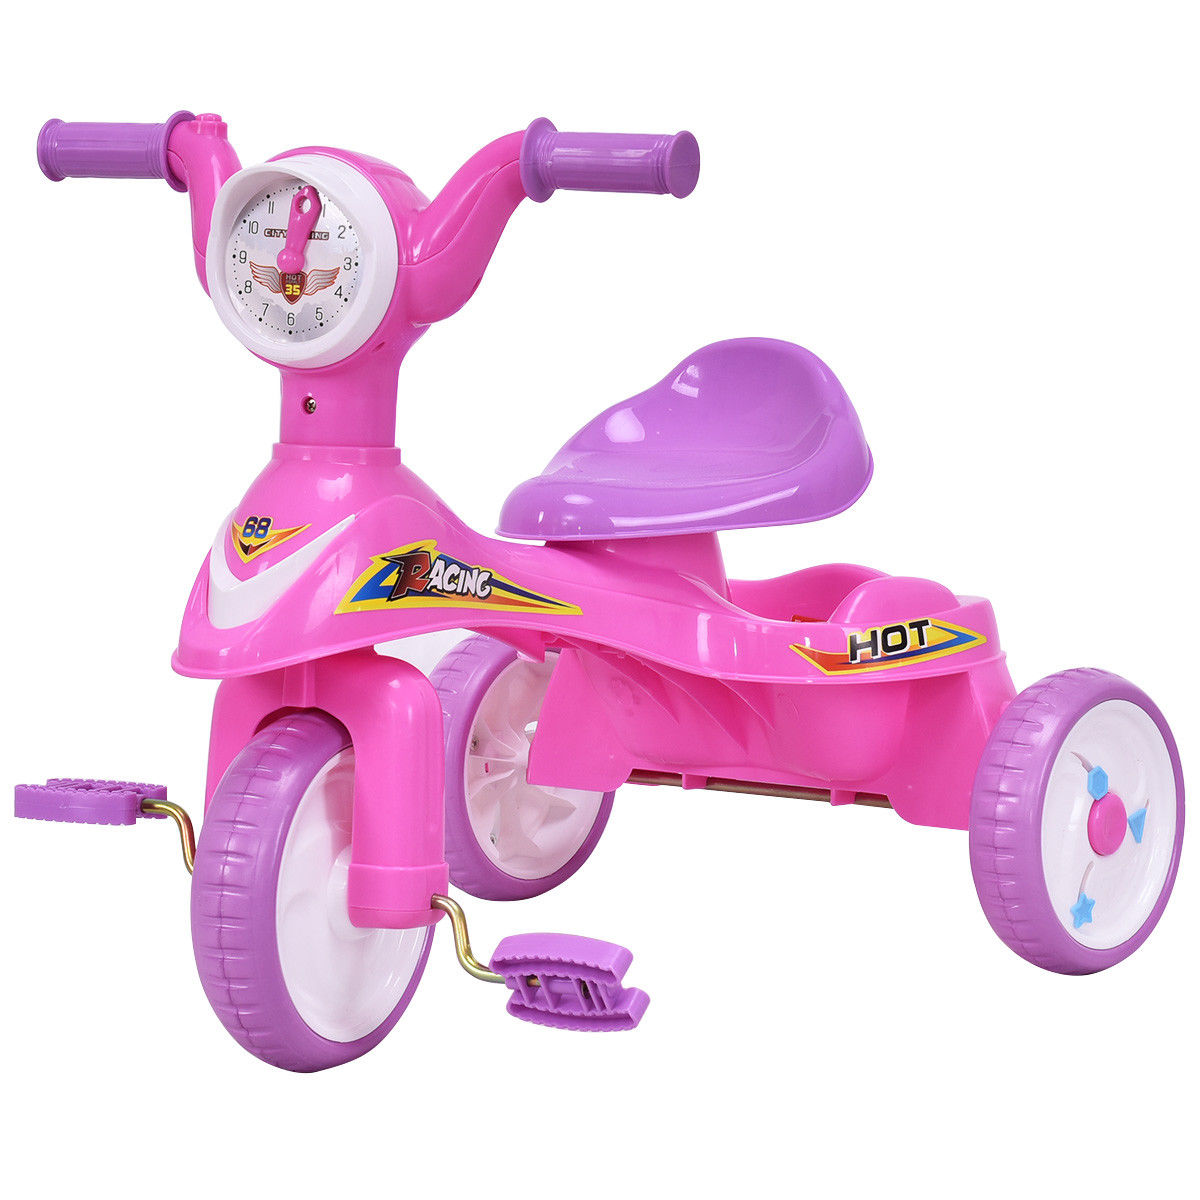 Goplus Toddlers Glide Tricycle Trike Bike Kids Ride On Toy w/ Music Pink Indoor/Outdoor